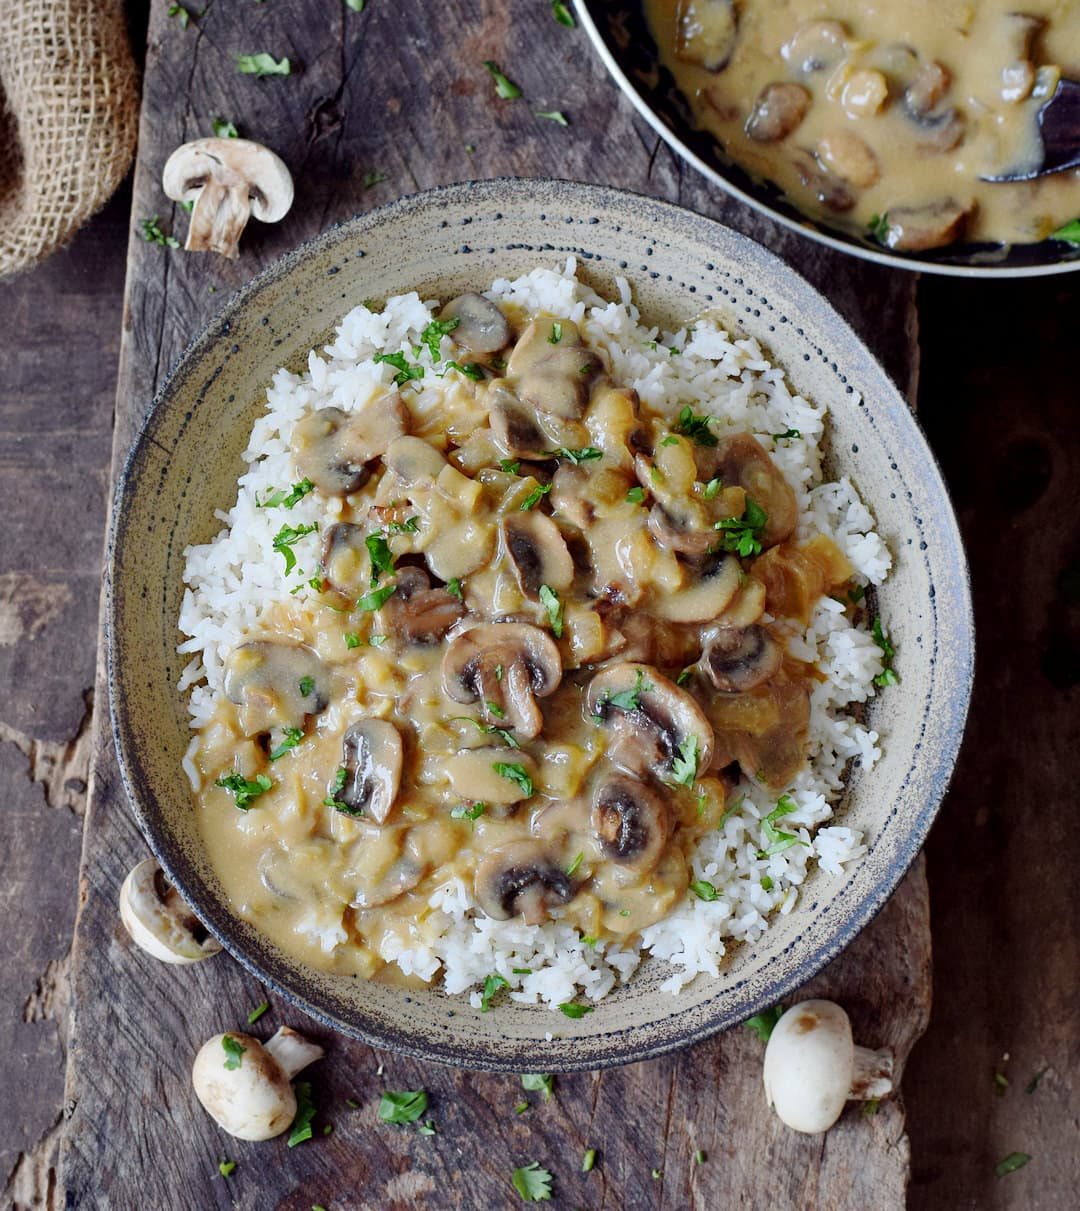 vegan mushroom stroganoff with rice on a plate